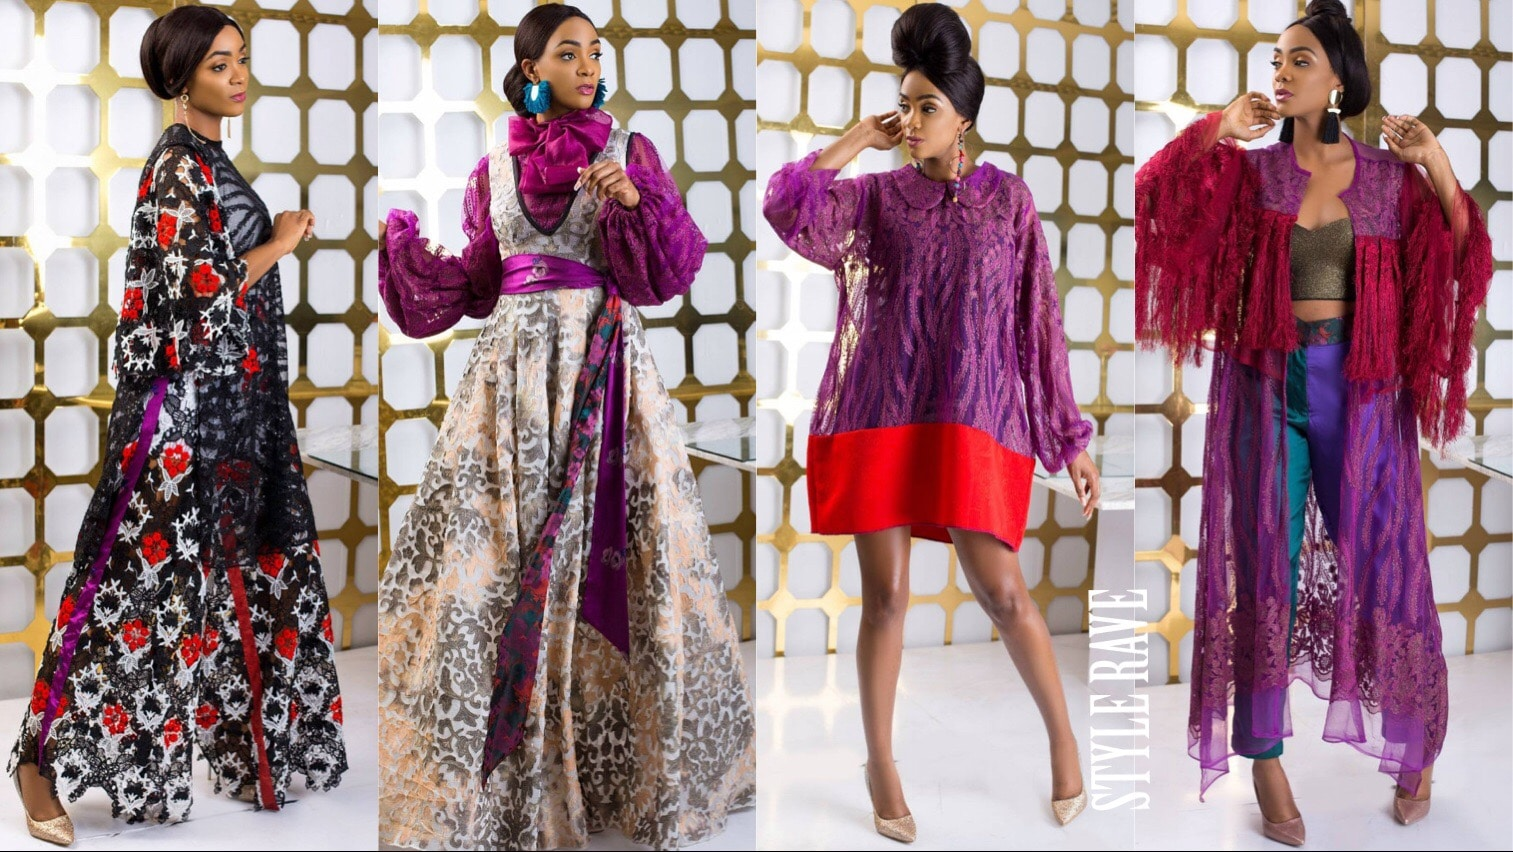 ayo-van-elmar-ave-salt-2020-spring-summer-collection-nigerian-designers-naija-fashion-style